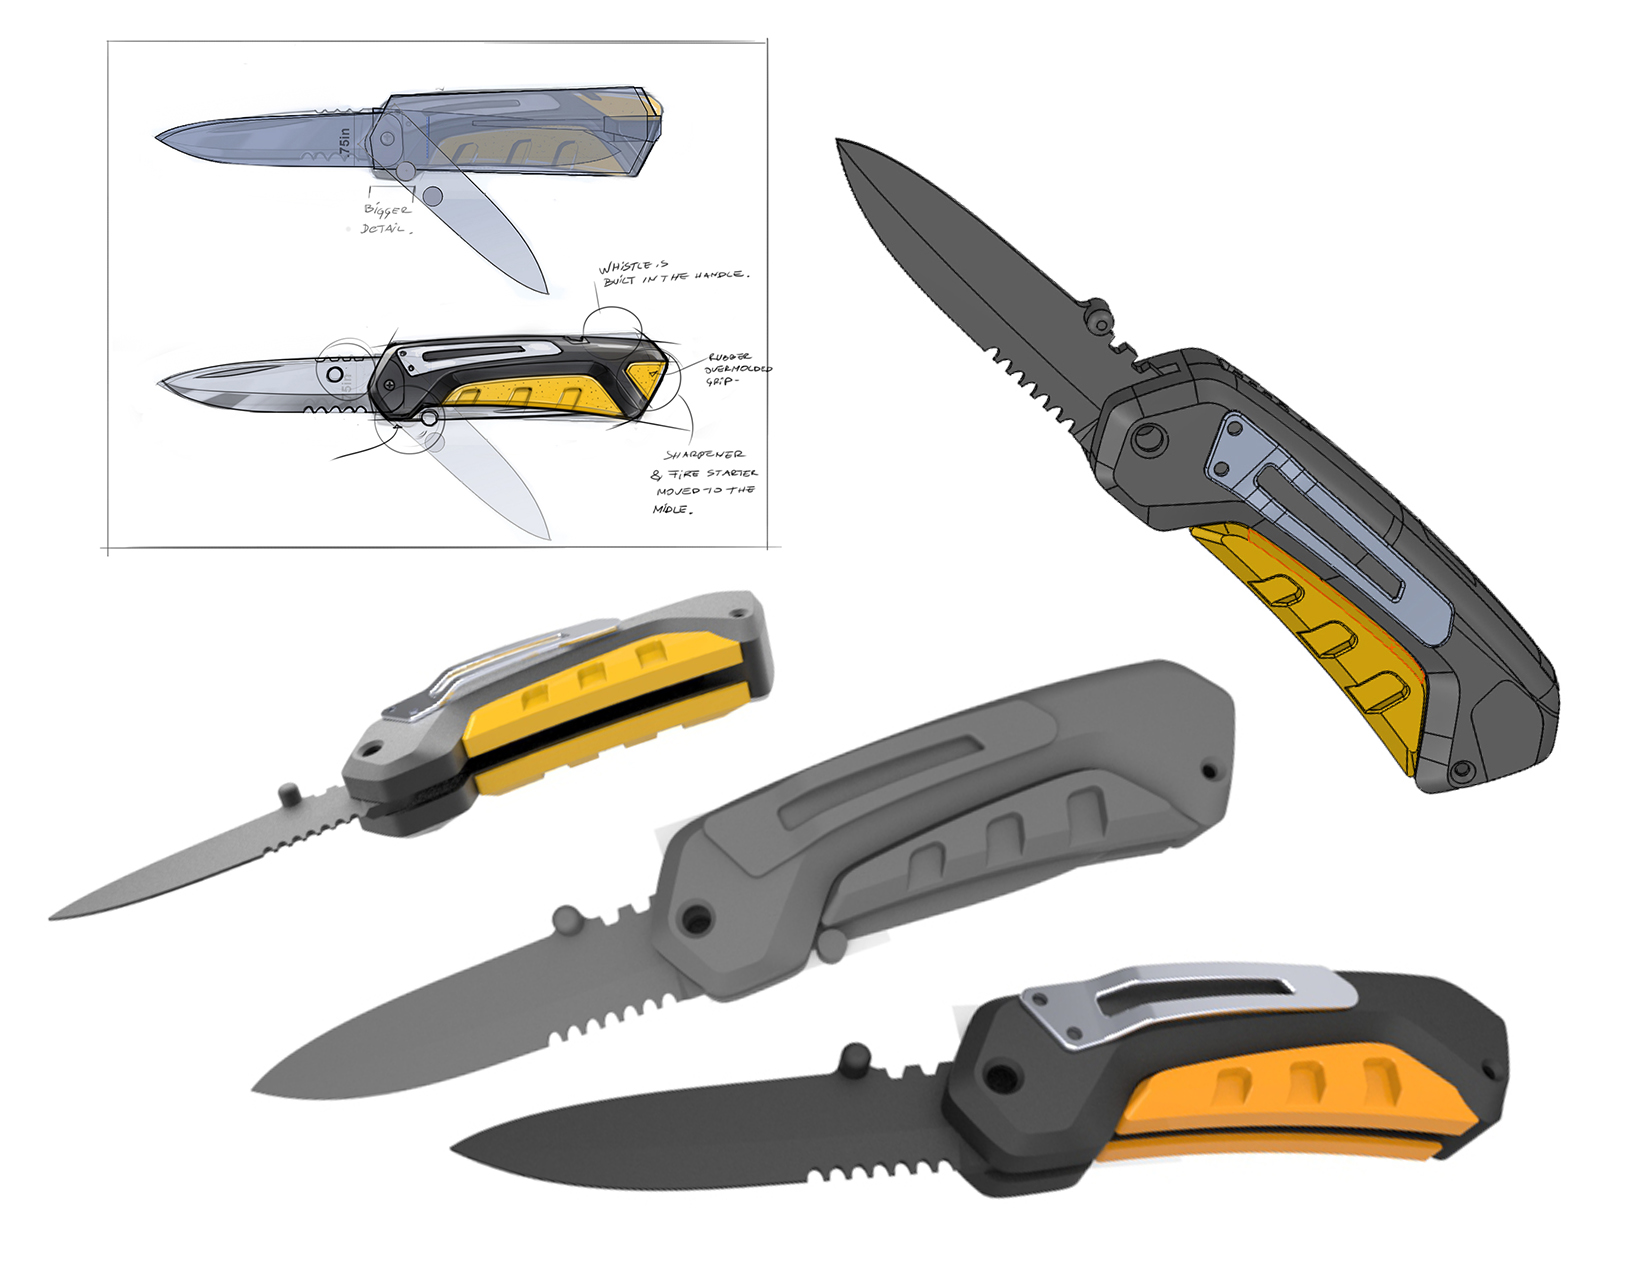 Cardboard Helicopter Product Design Cleveland Ohio - Smith's Knife Concepts4.jpg